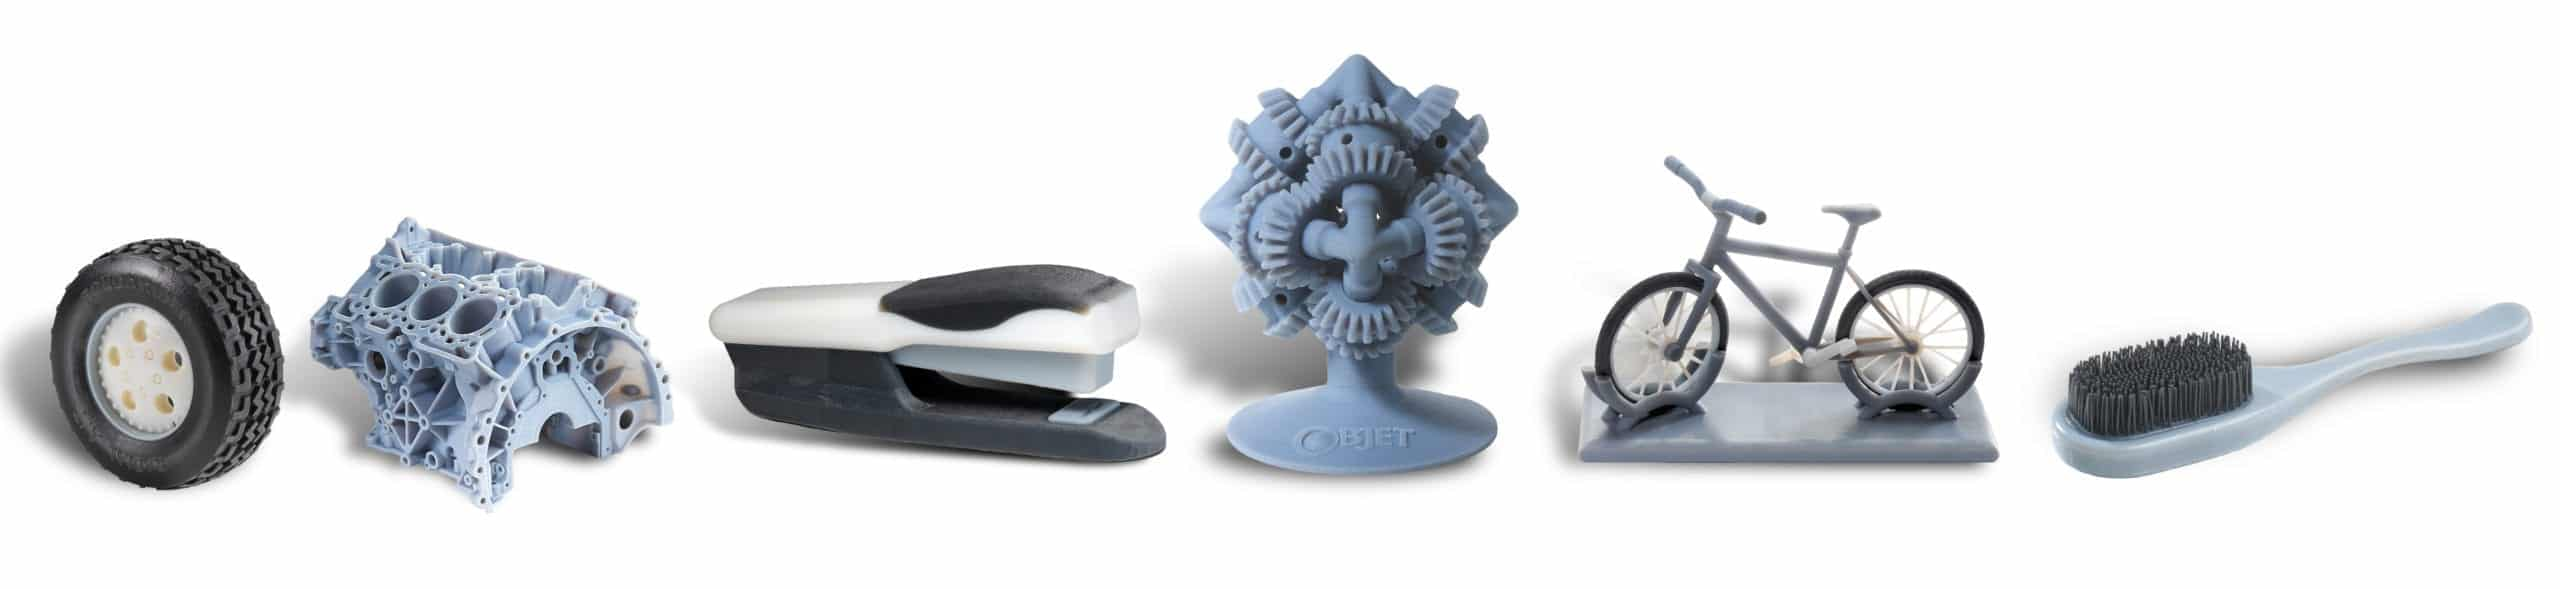 Rapid Prototype Metal Stamping 3d Printing And Additive